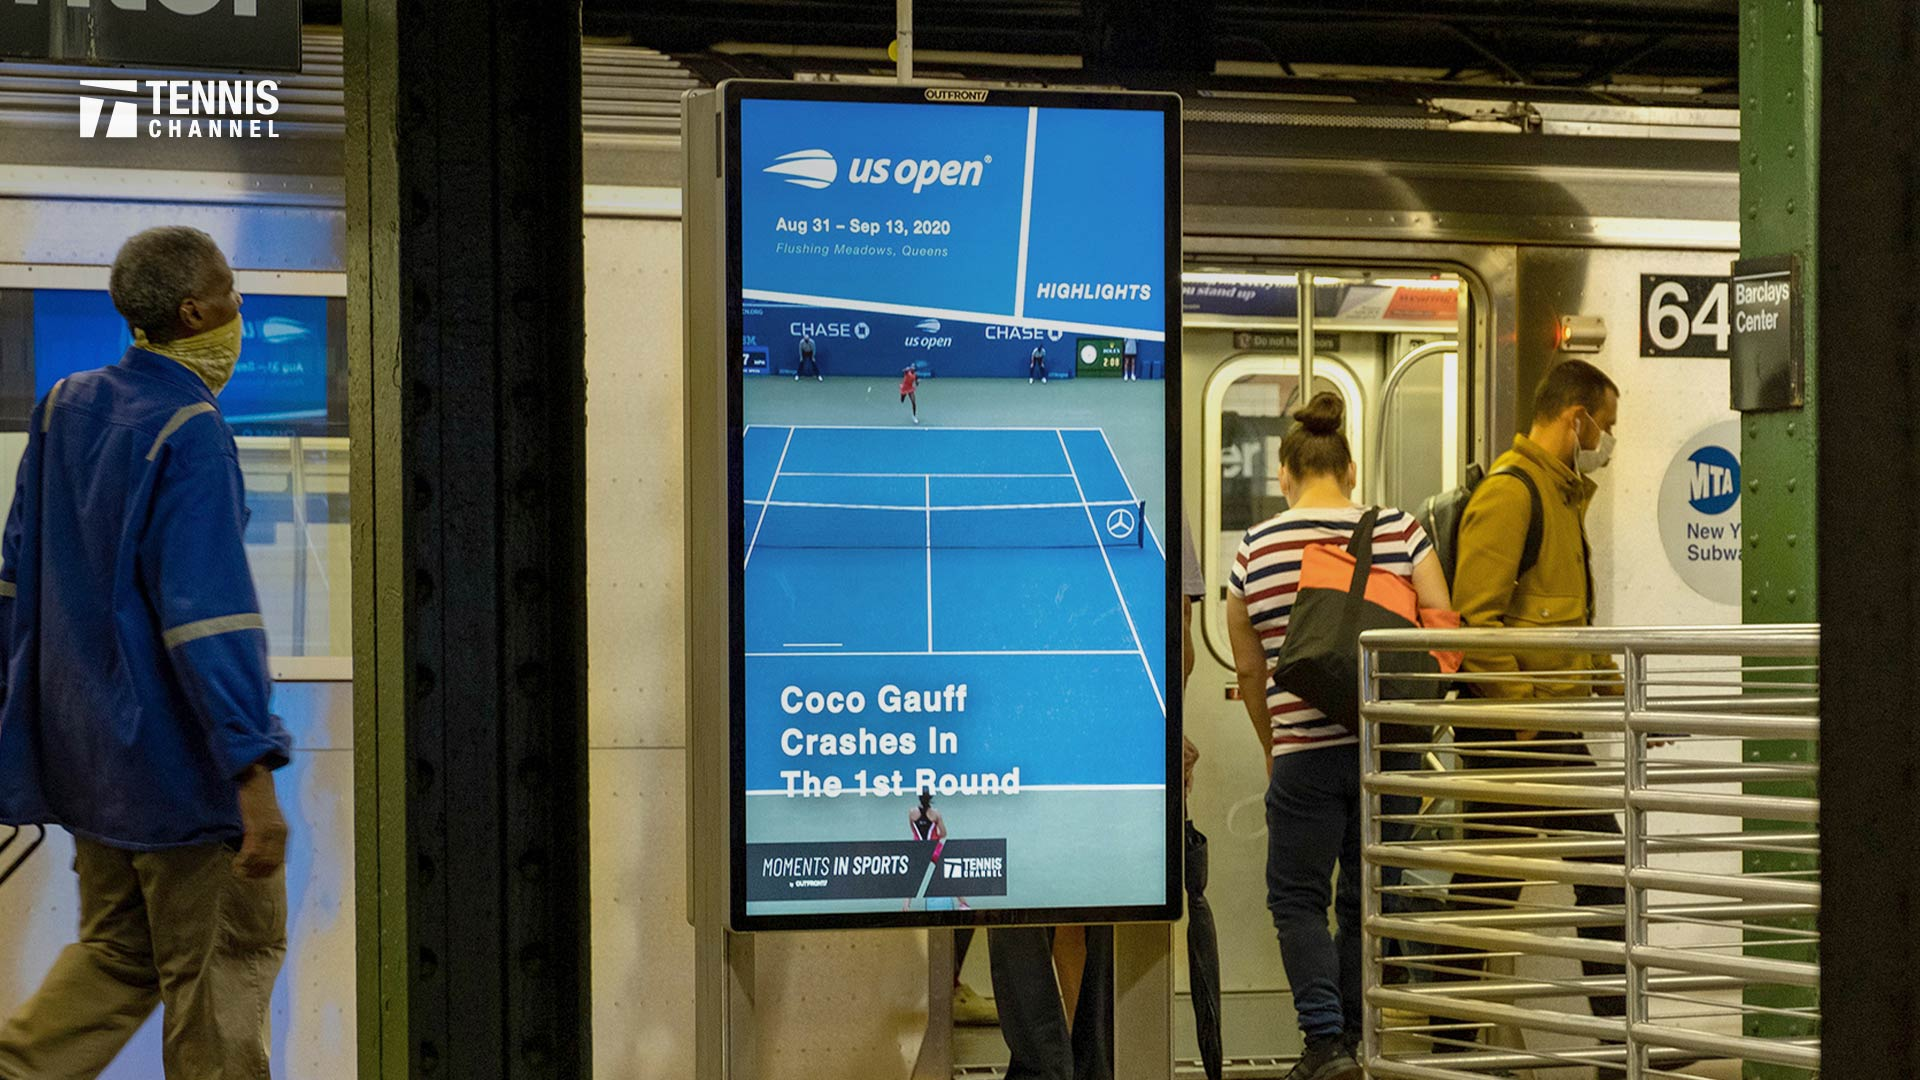 Digital display in NYC subway station of Tennis Channel highlights